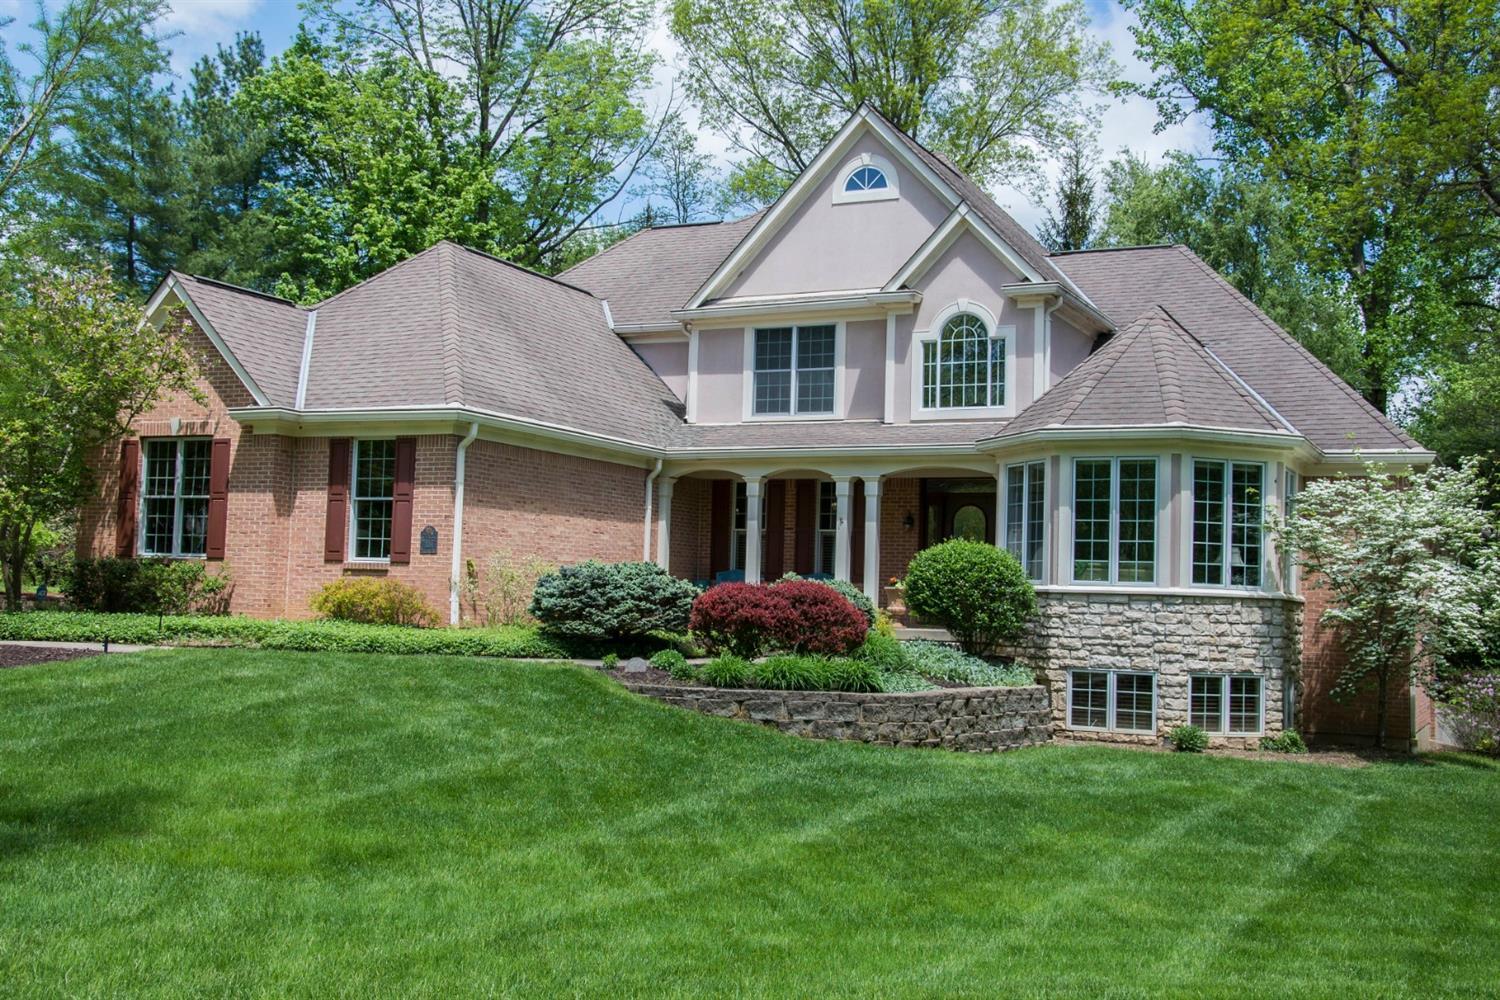 334 Whispering Pines Dr Miami Twp. (East), OH